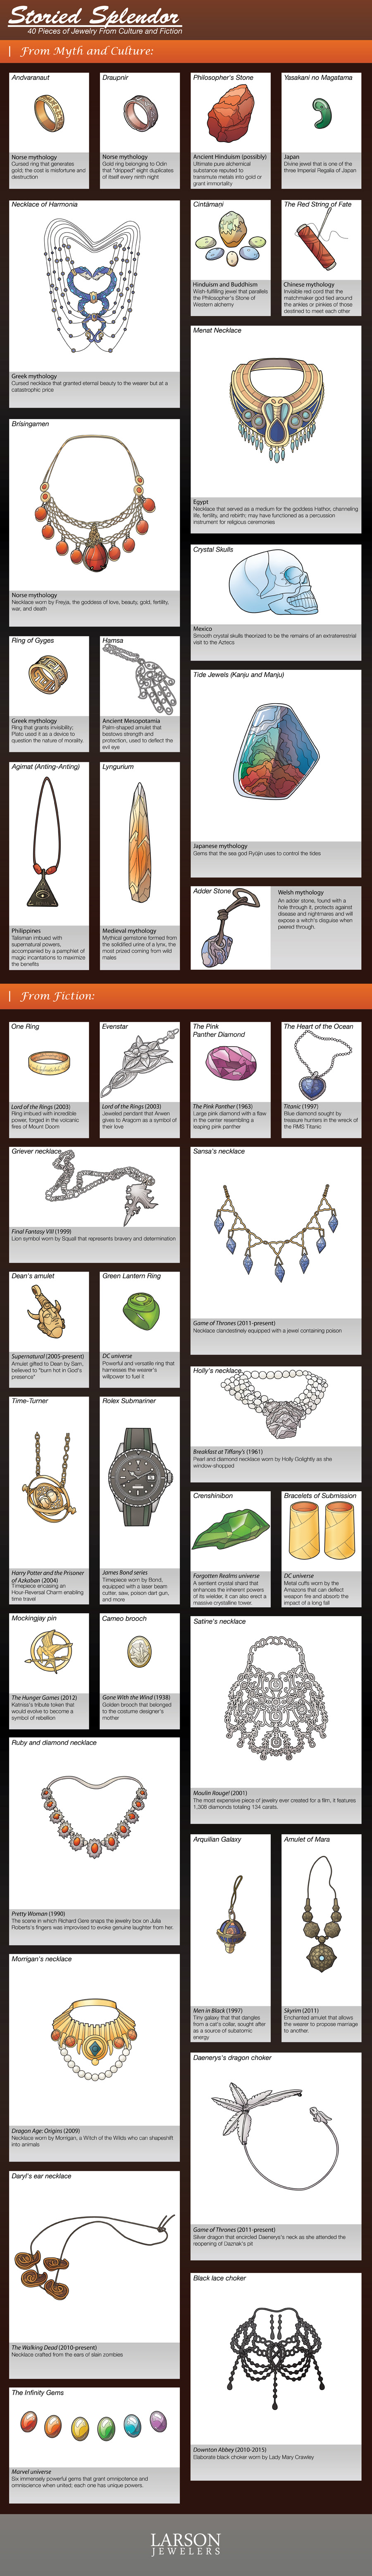 Jewelry and Gems From Culture and Fiction